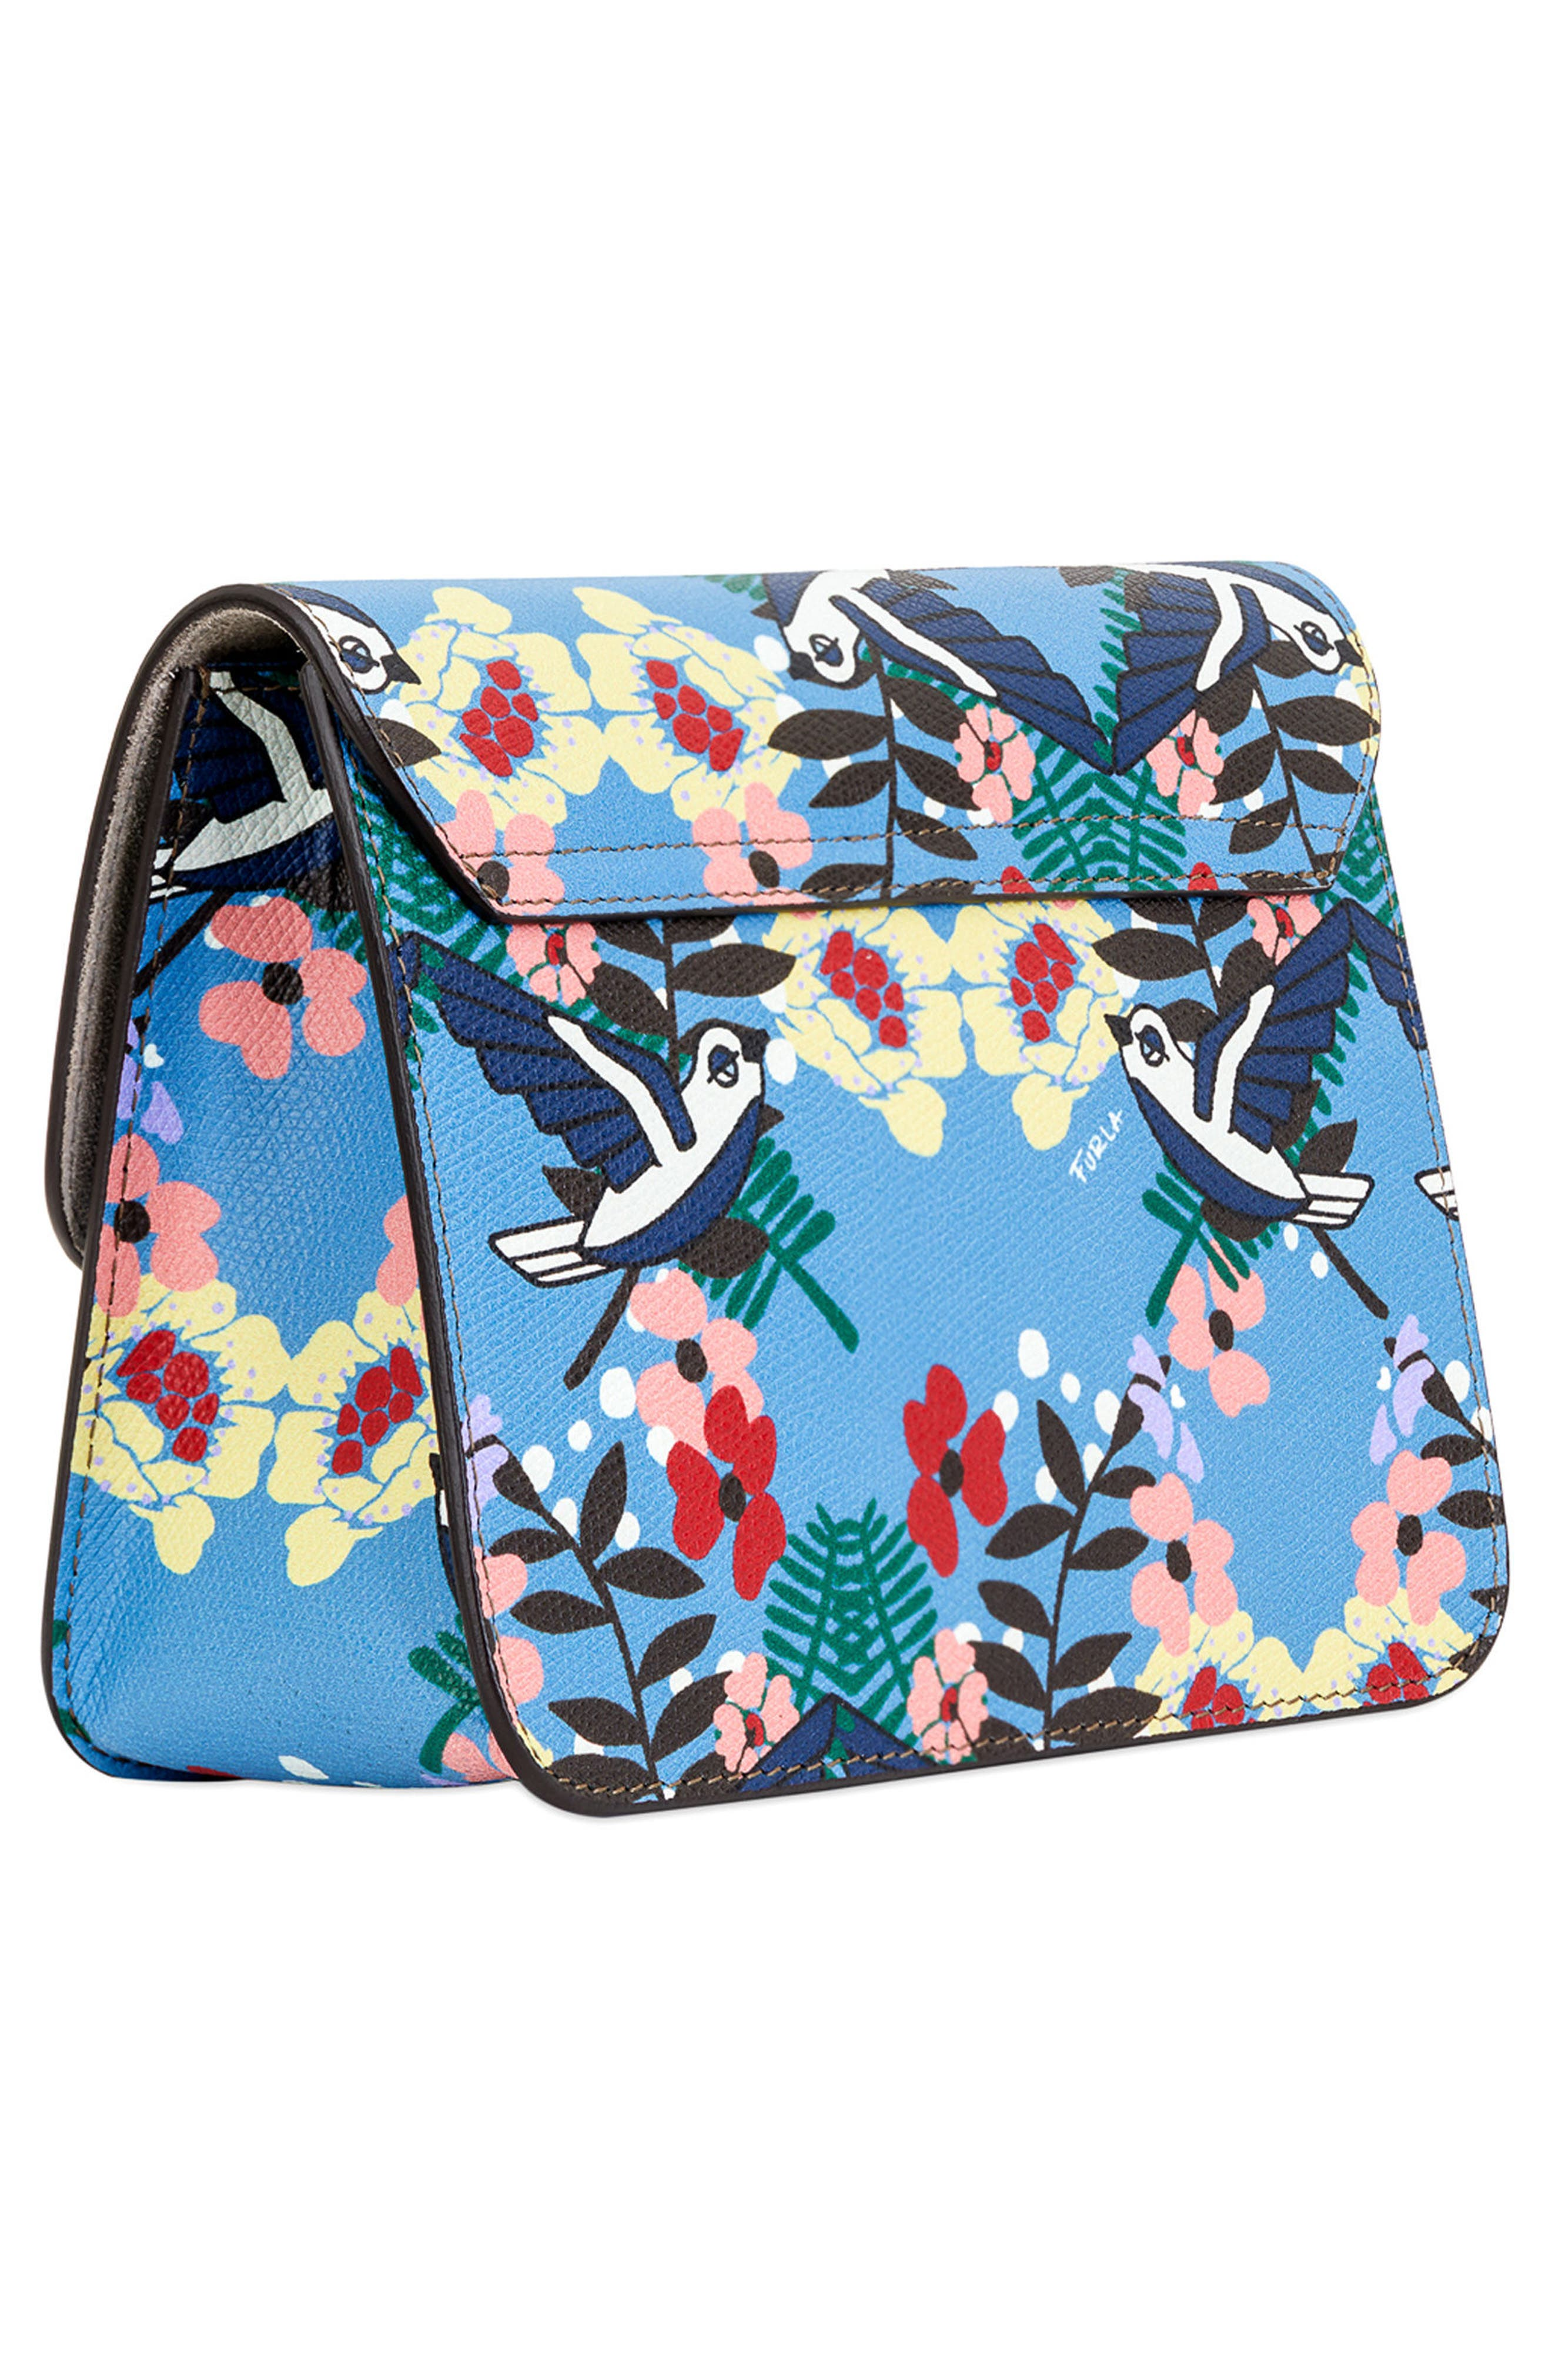 Small Metropolis Print Leather Crossbody Bag,                             Alternate thumbnail 2, color,